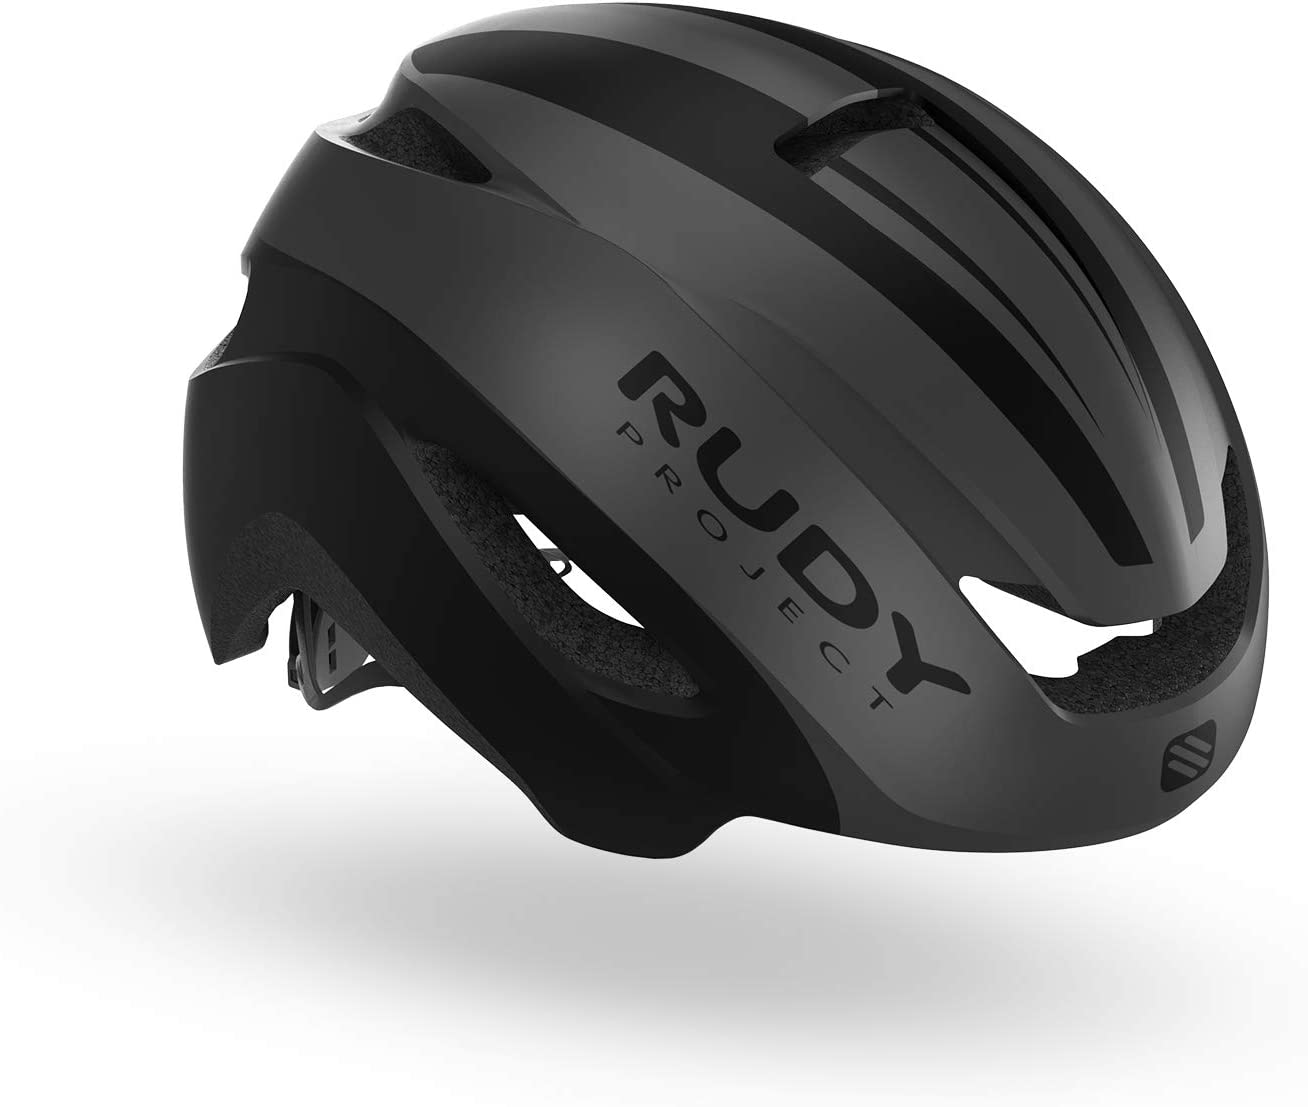 Challenge the lowest price In stock of Japan Rudy Project Volantis Helmet